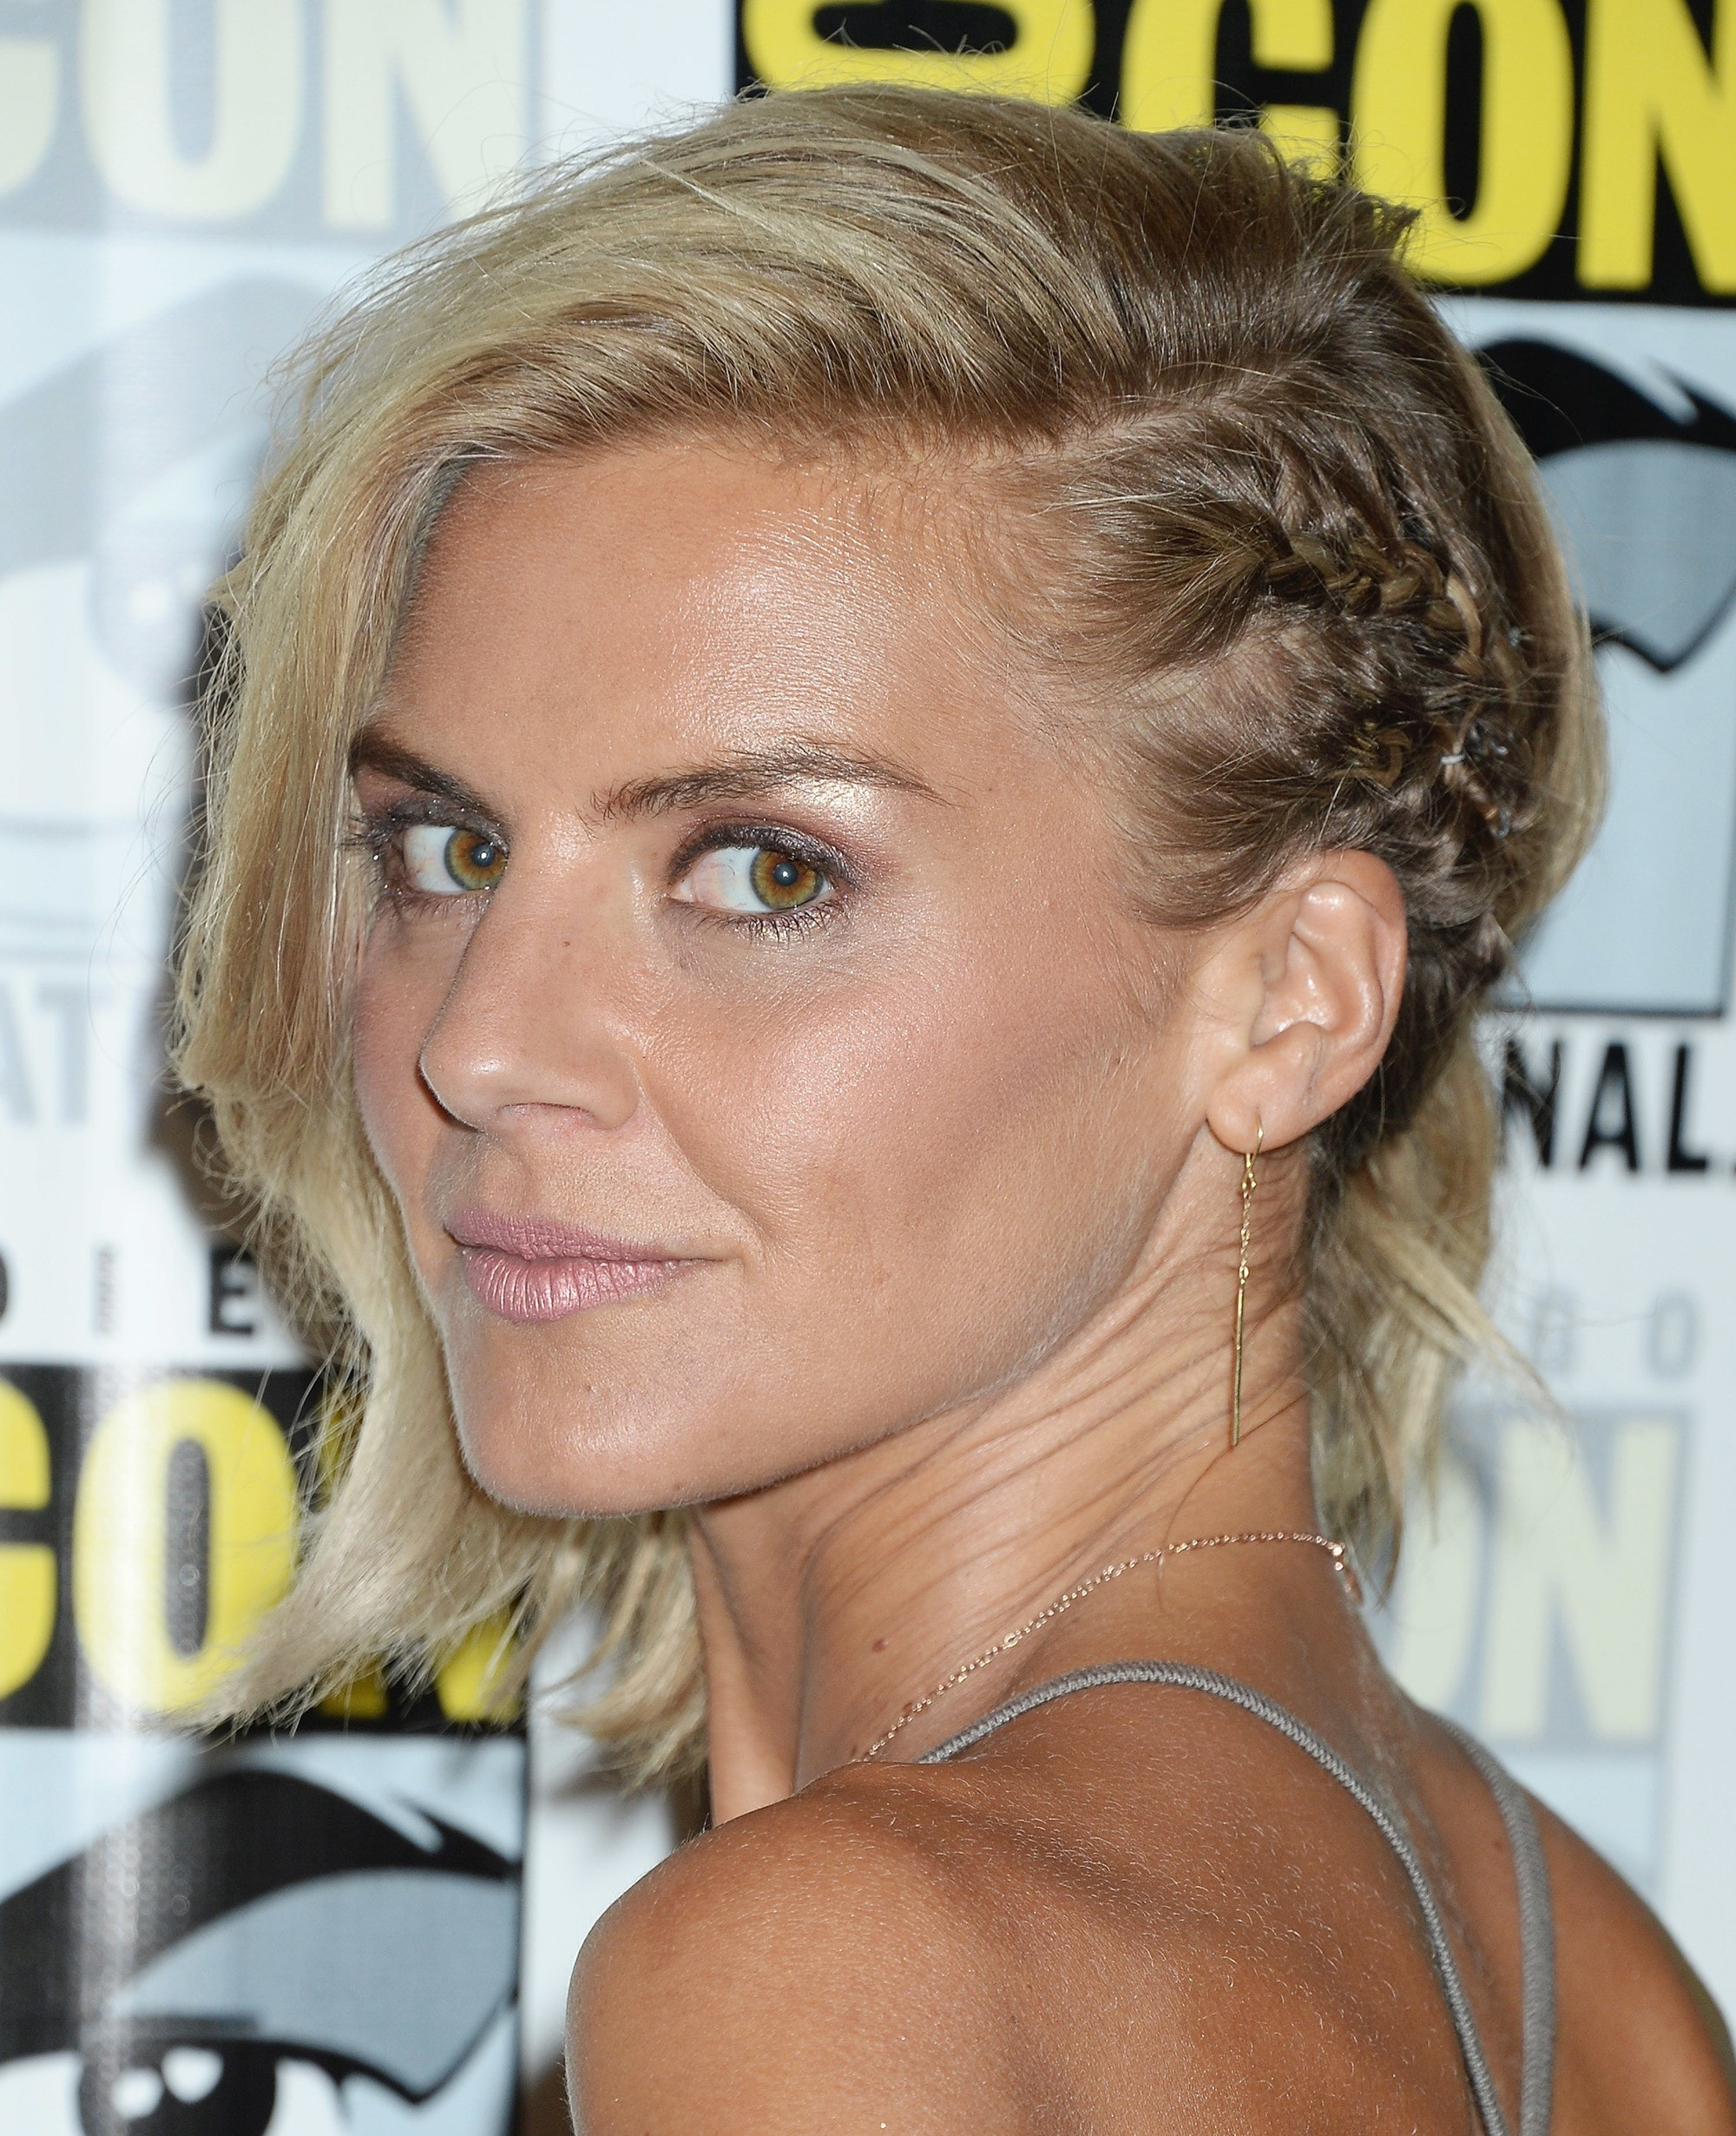 happy endings and scrubs star eliza coupe with her blonde hair in a braided undercut style